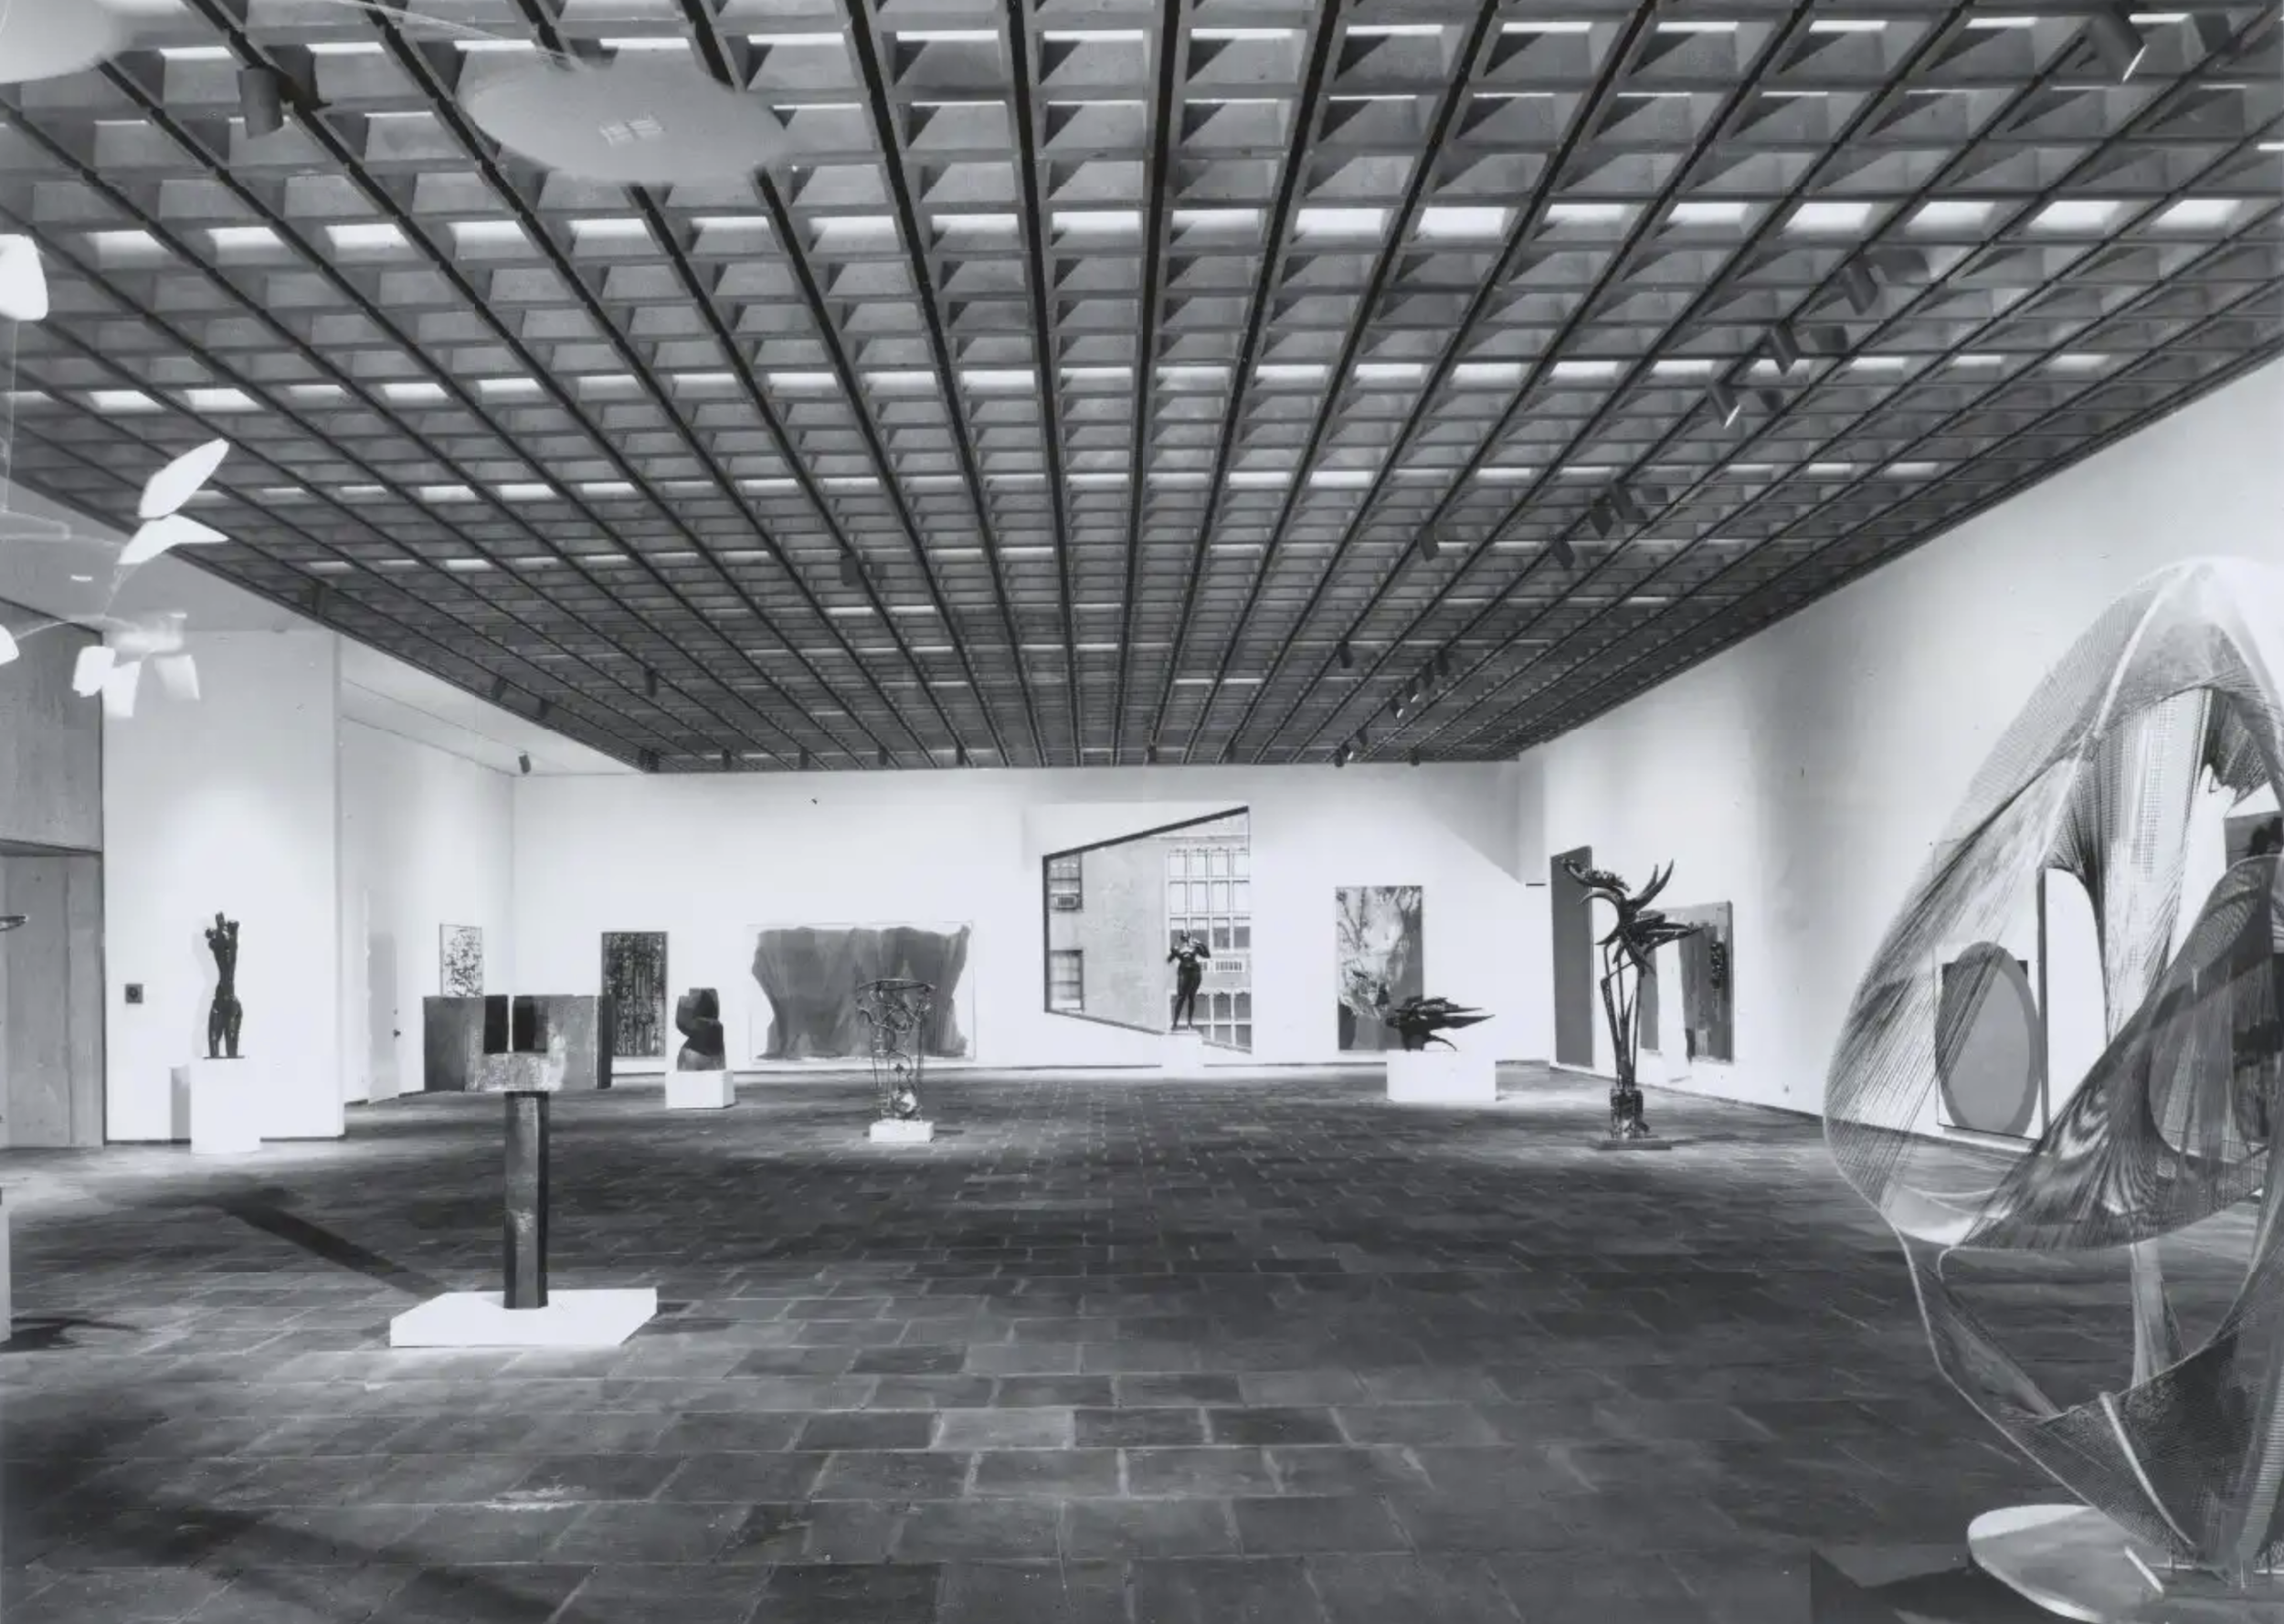 Fourth floor gallery showing suspended concrete grid ceiling